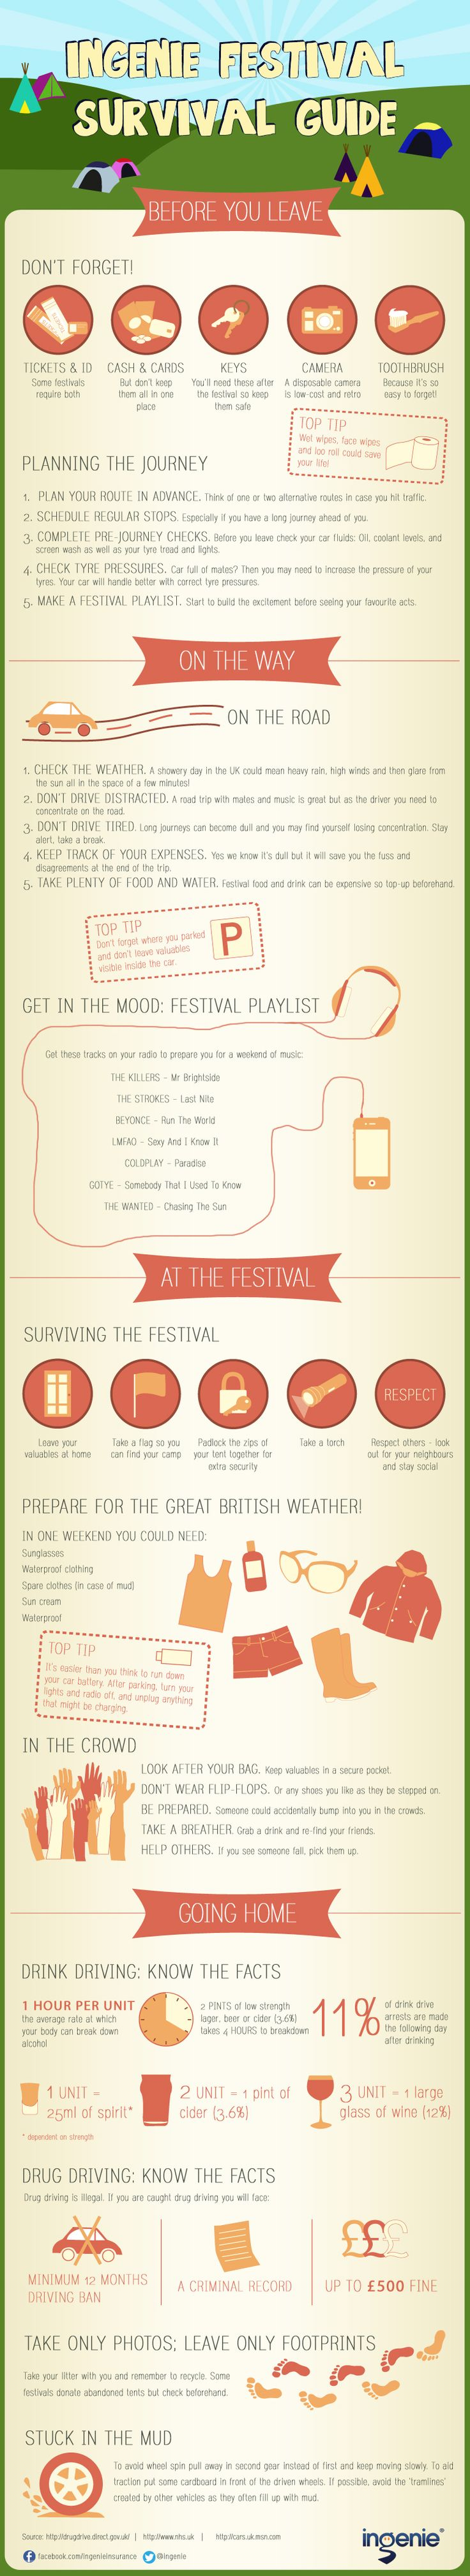 Ultimate Guide to surviving festival season.